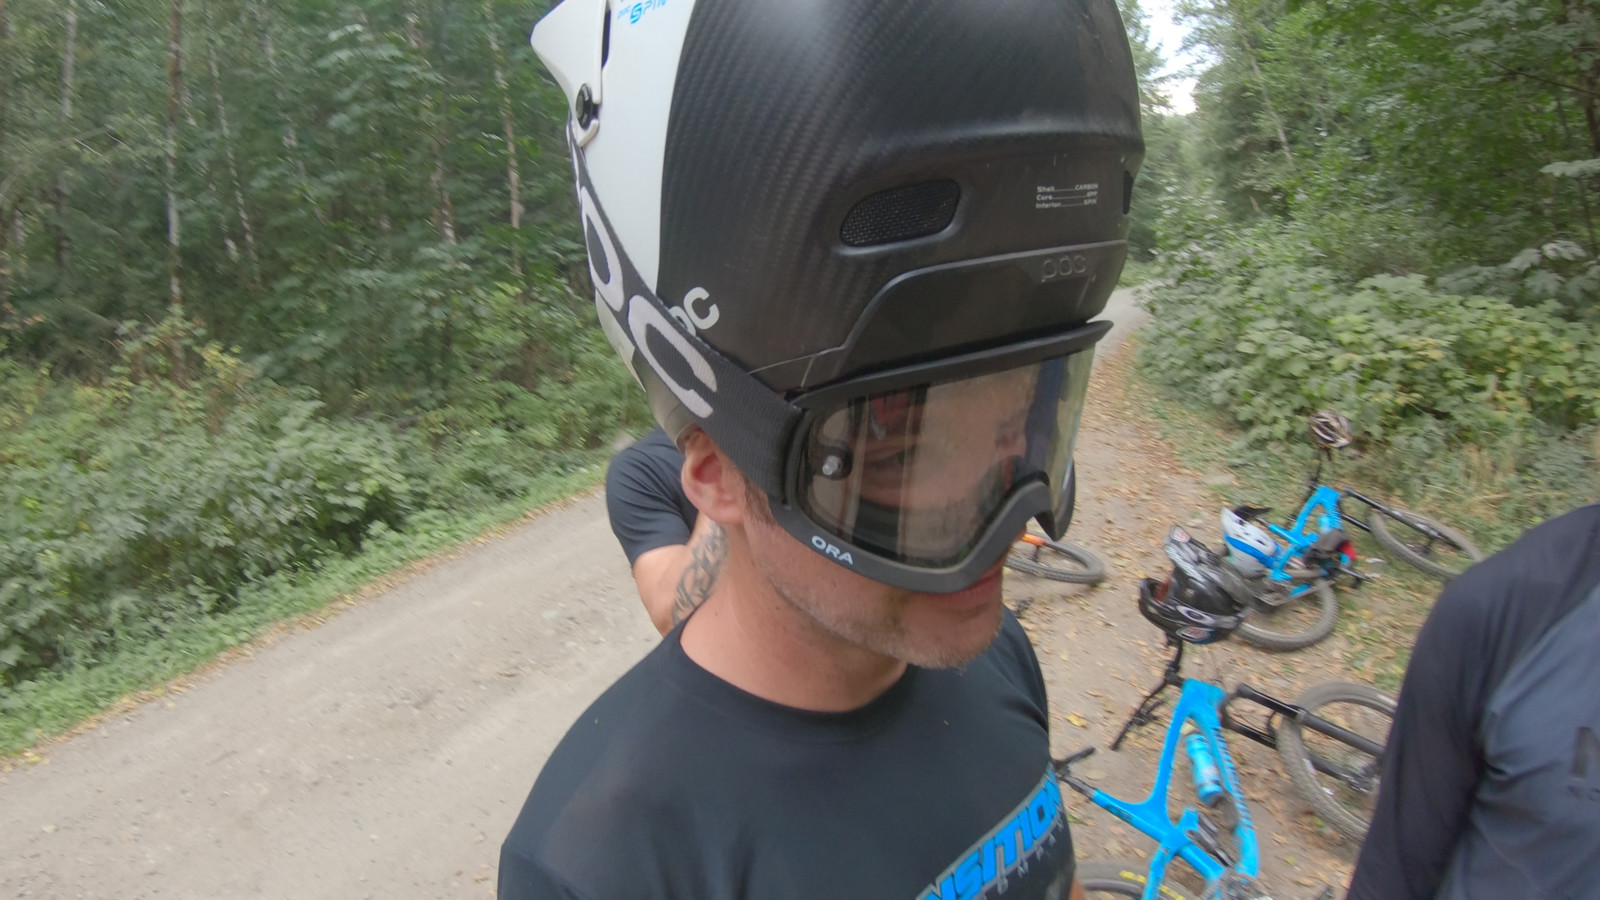 Transition owner Kyle working on some new helmet tech.